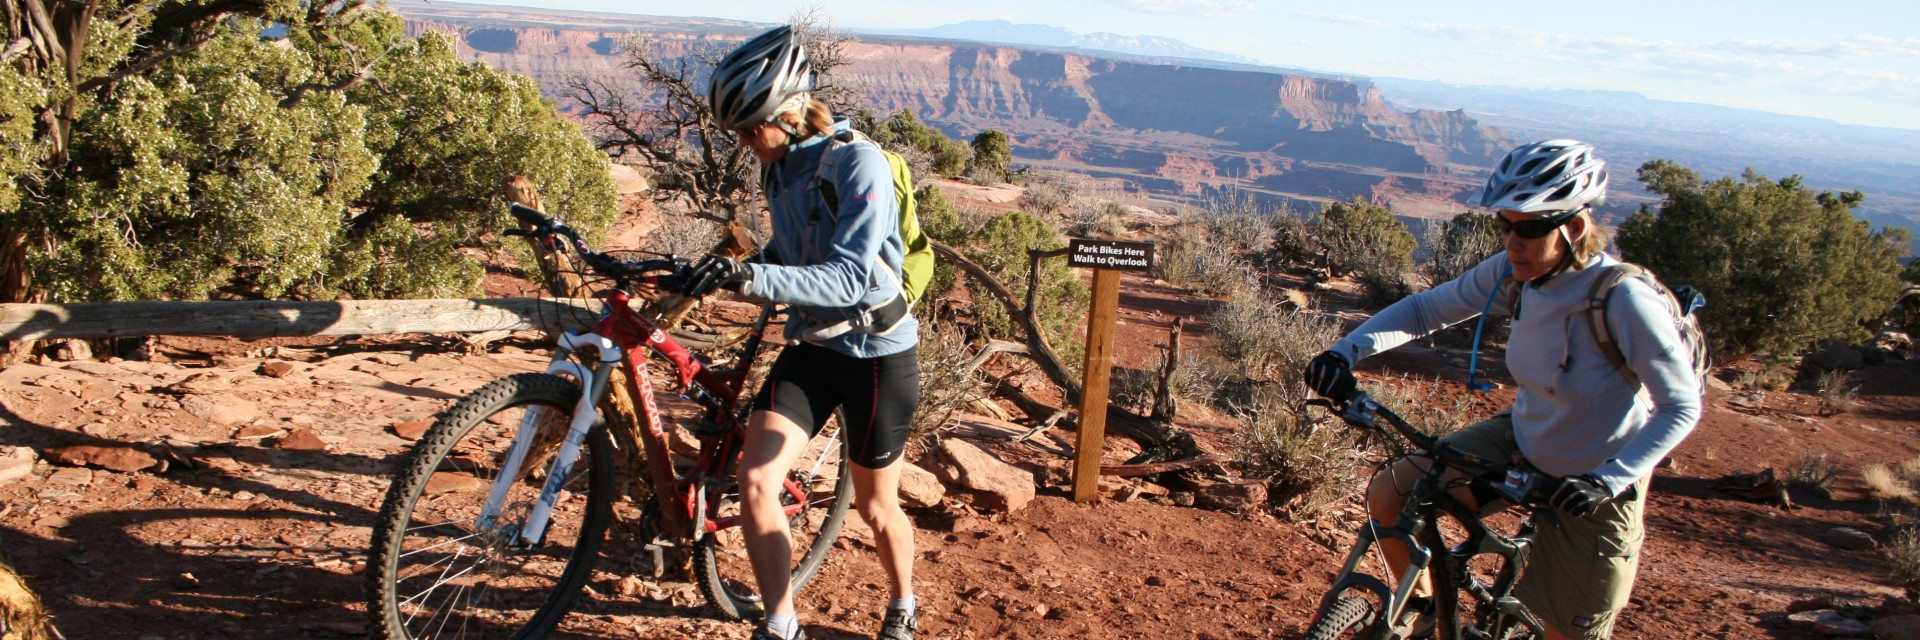 Walking bikes over a tricky section of the Dead Horse Point Singletrack guided mountain bike tour west of Moab UT